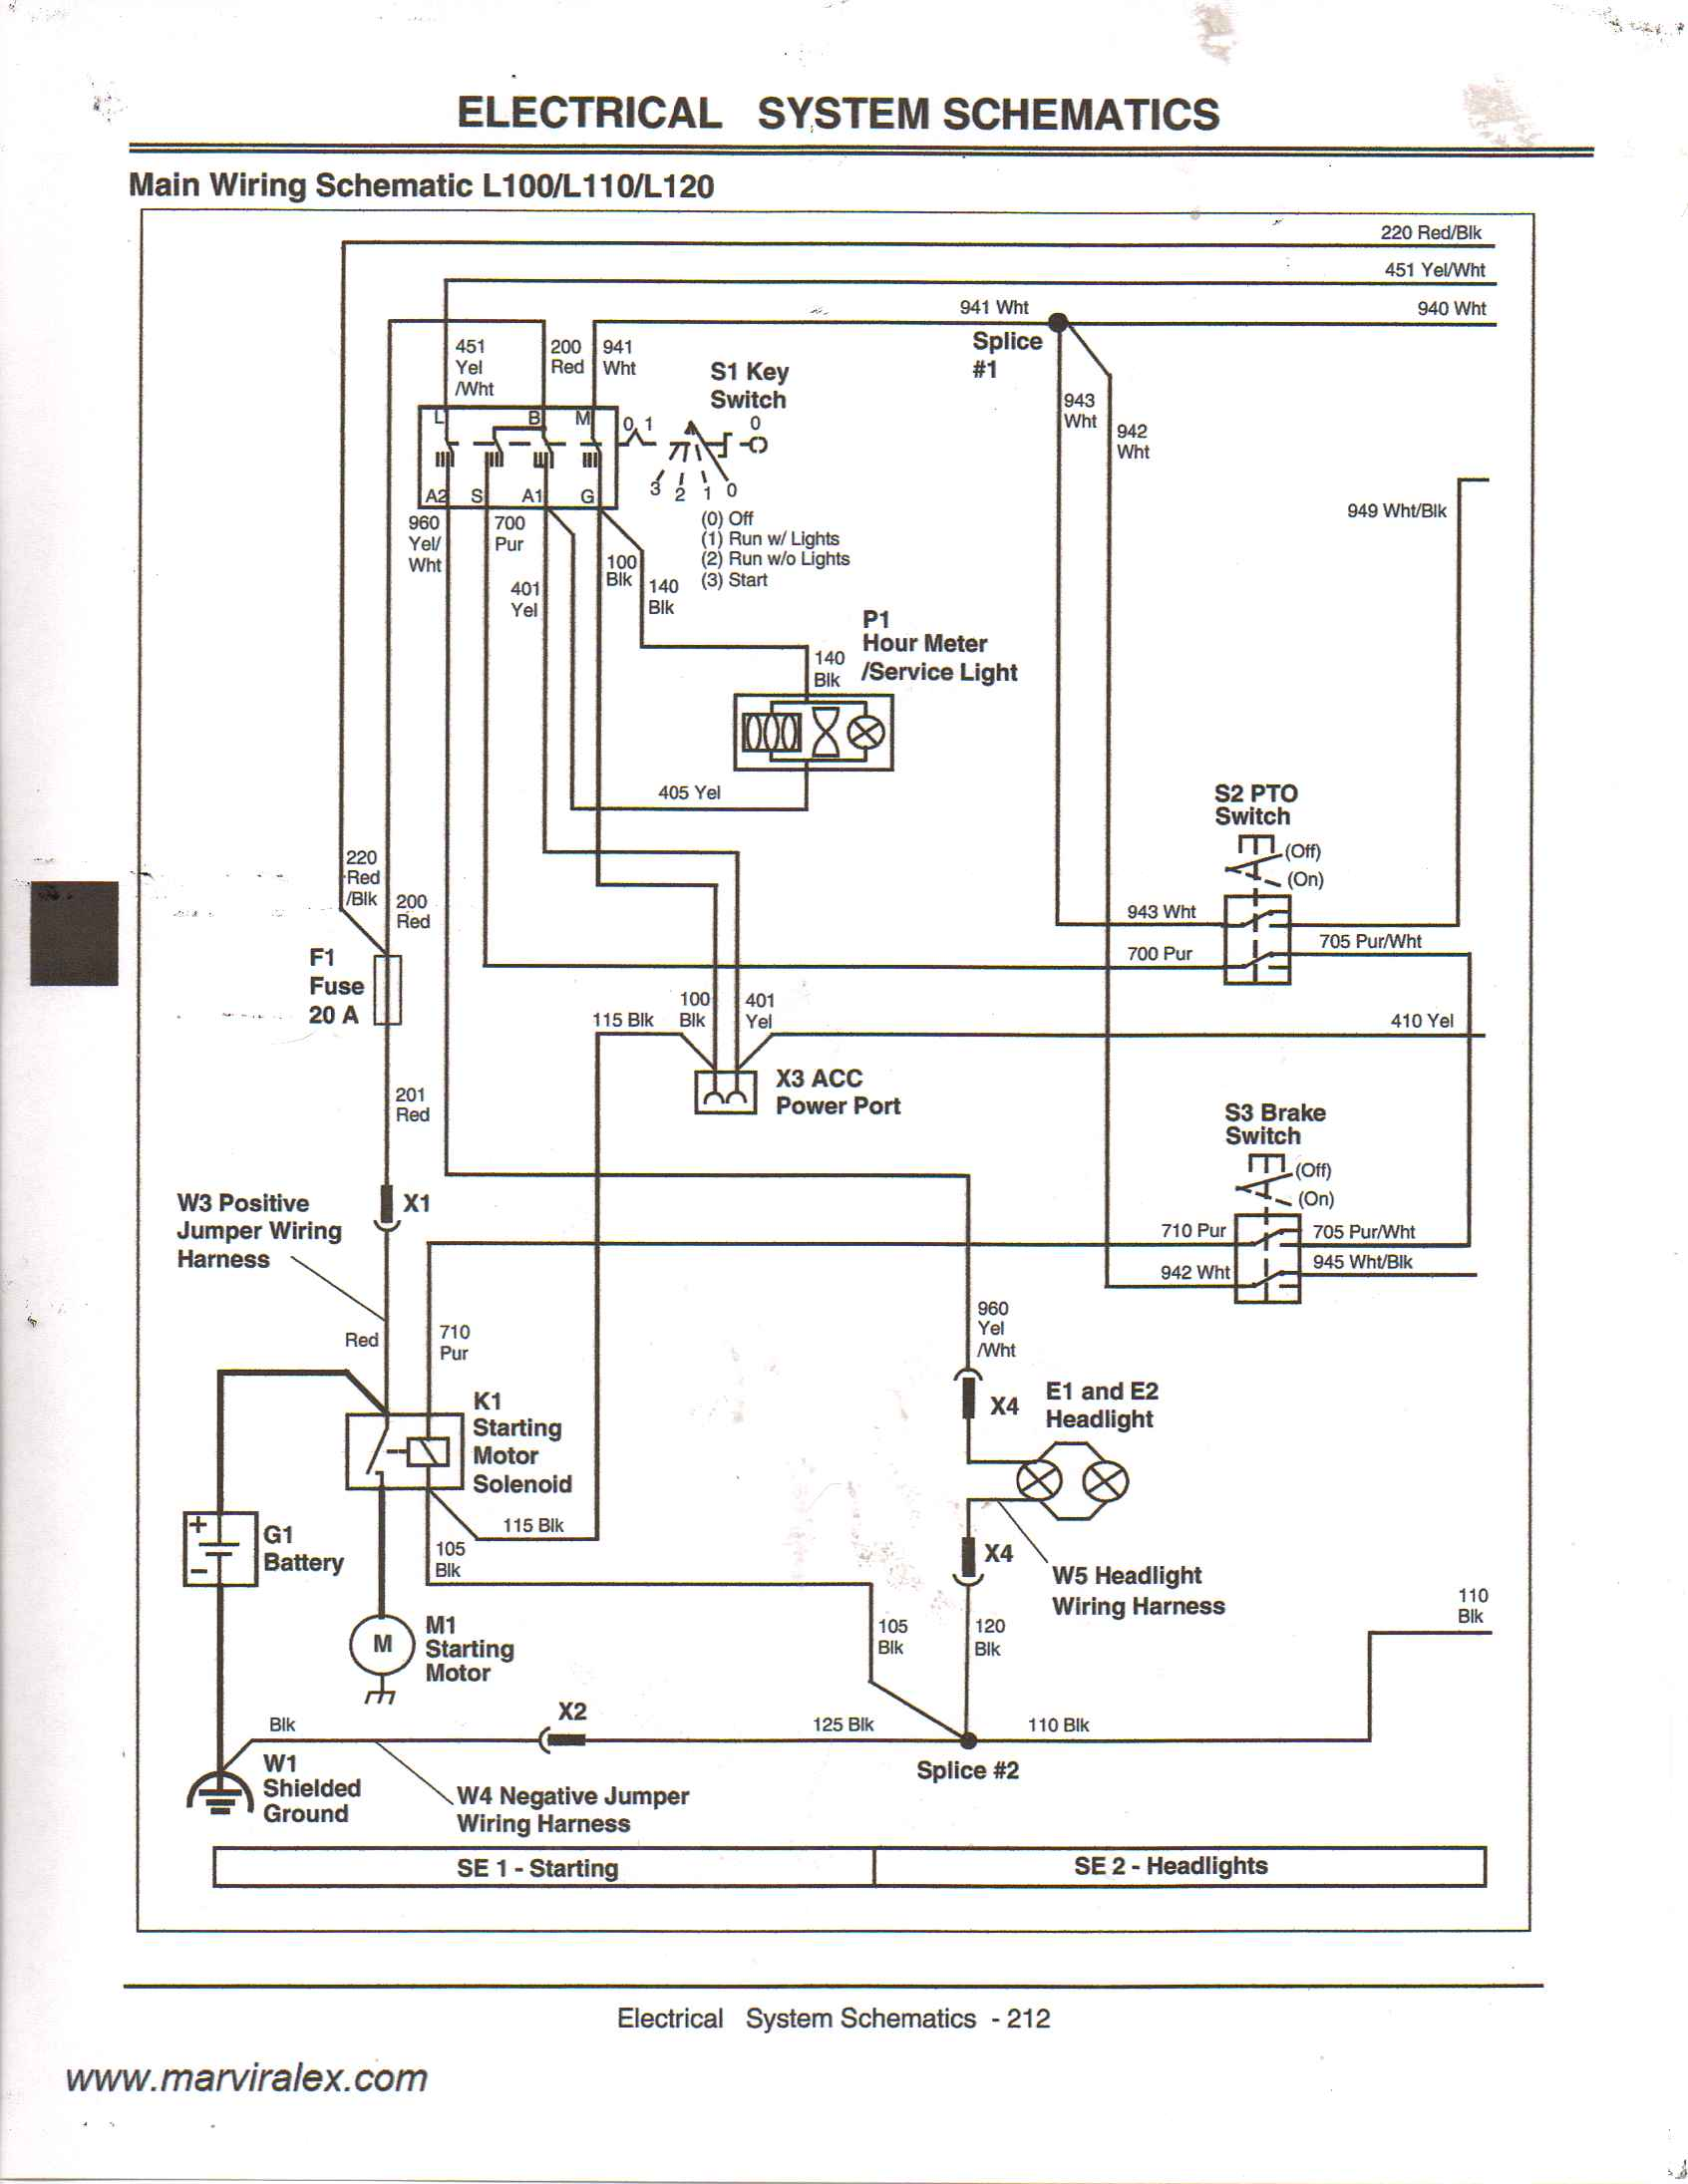 John Deere L110 Wiring Diagram on john deere wiring schematics